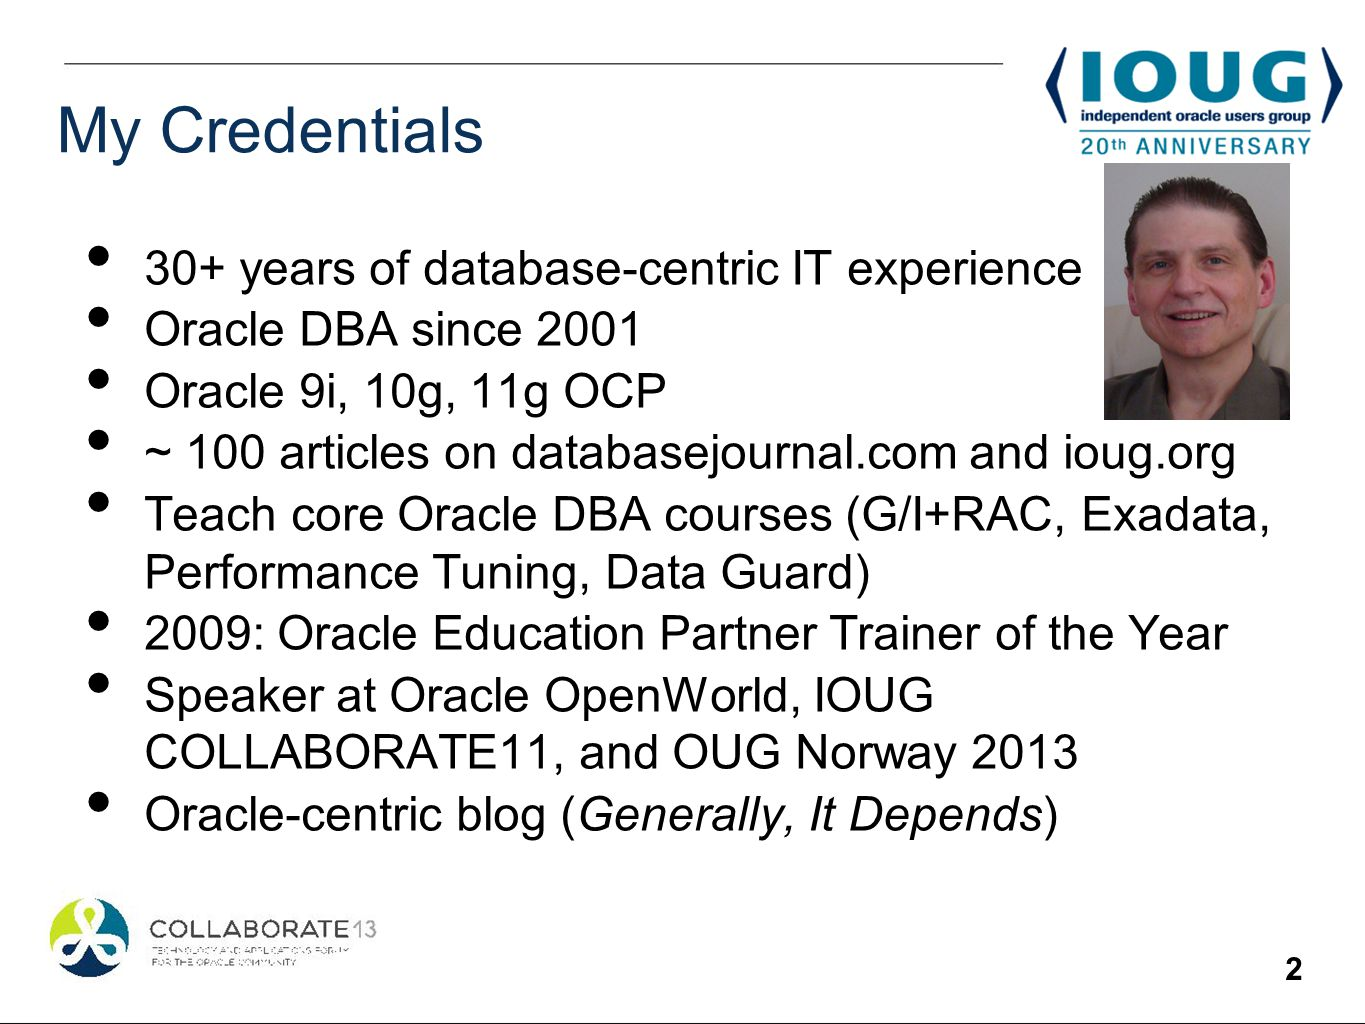 2 My Credentials 30+ years of database-centric IT experience Oracle DBA since 2001 Oracle 9i, 10g, 11g OCP ~ 100 articles on databasejournal.com and ioug.org Teach core Oracle DBA courses (G/I+RAC, Exadata, Performance Tuning, Data Guard) 2009: Oracle Education Partner Trainer of the Year Speaker at Oracle OpenWorld, IOUG COLLABORATE11, and OUG Norway 2013 Oracle-centric blog (Generally, It Depends)